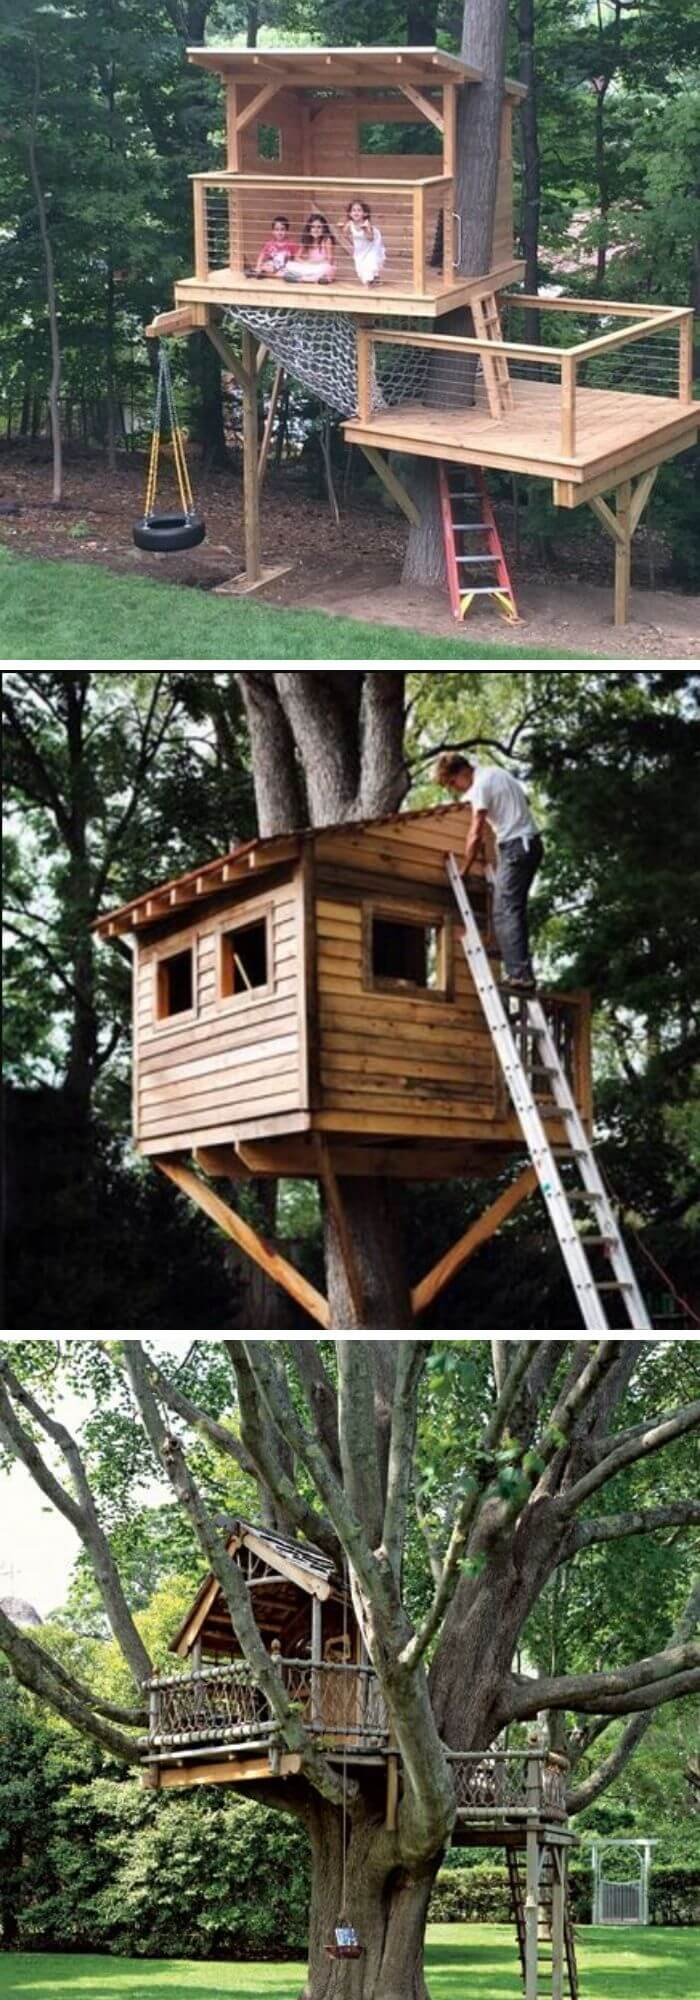 Backyard DIY Treehouse